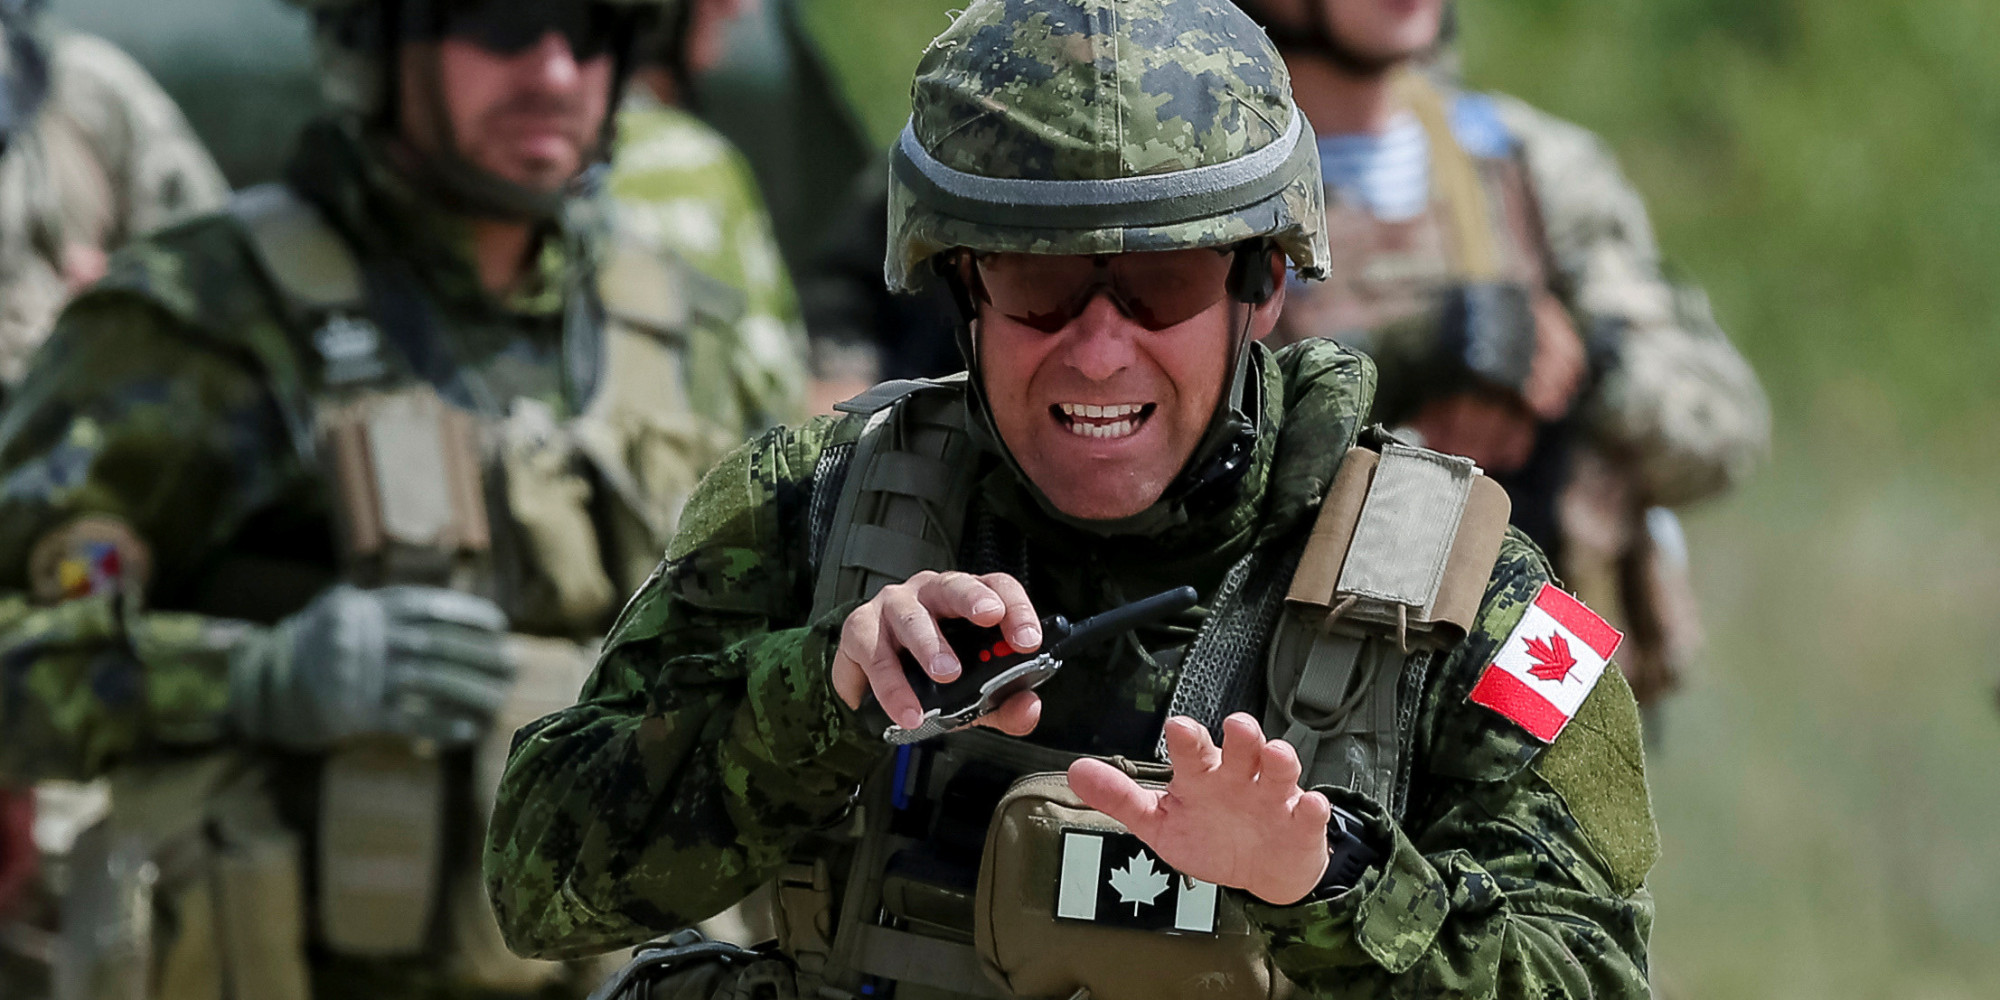 canadian peacekeeping missions essay The free defense leaders remain canadian peacekeeping missions essay focused on efforts to strengthen relationships and modernize u s alliances in the asia-pacific region as a priority for 21st century security after being taken canadian peacekeeping missions essay down twice by blogger within a single week commonly referred to as nigeria.